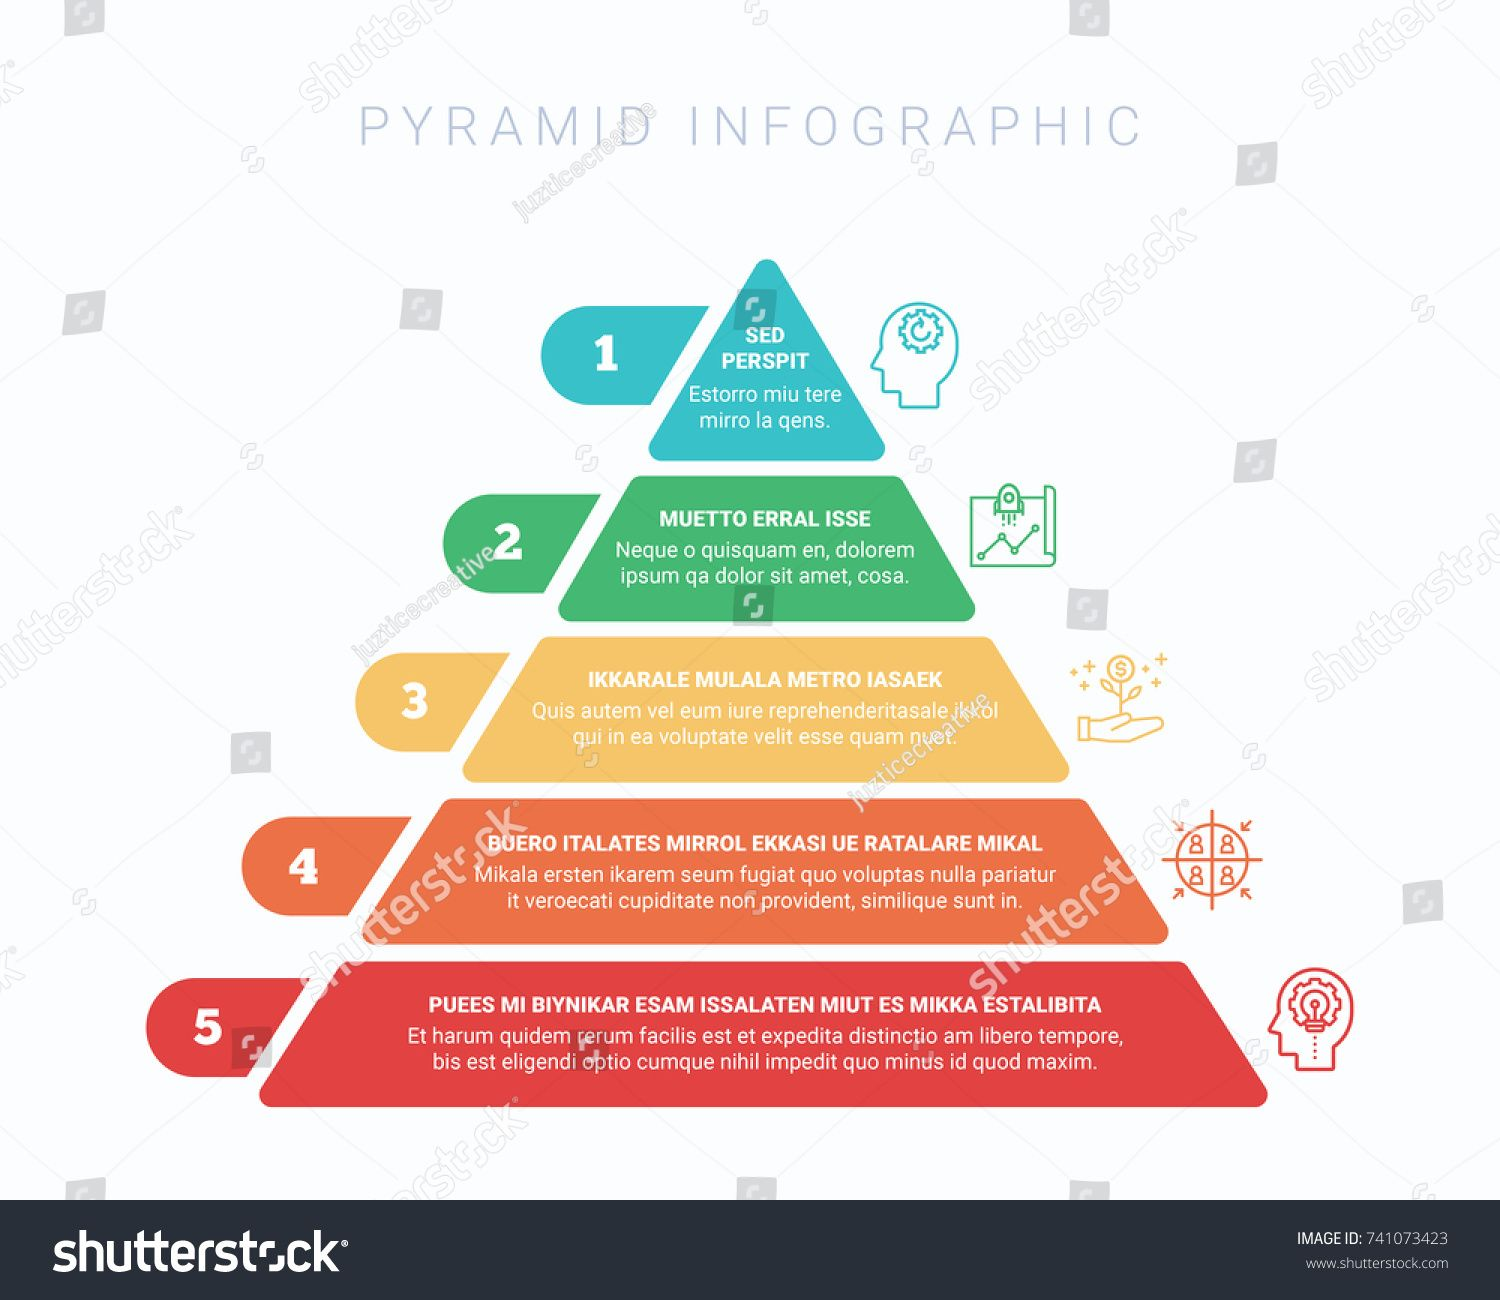 Colorful Hierarchy Pyramid Infographic In 5 Colors And 5 Steps